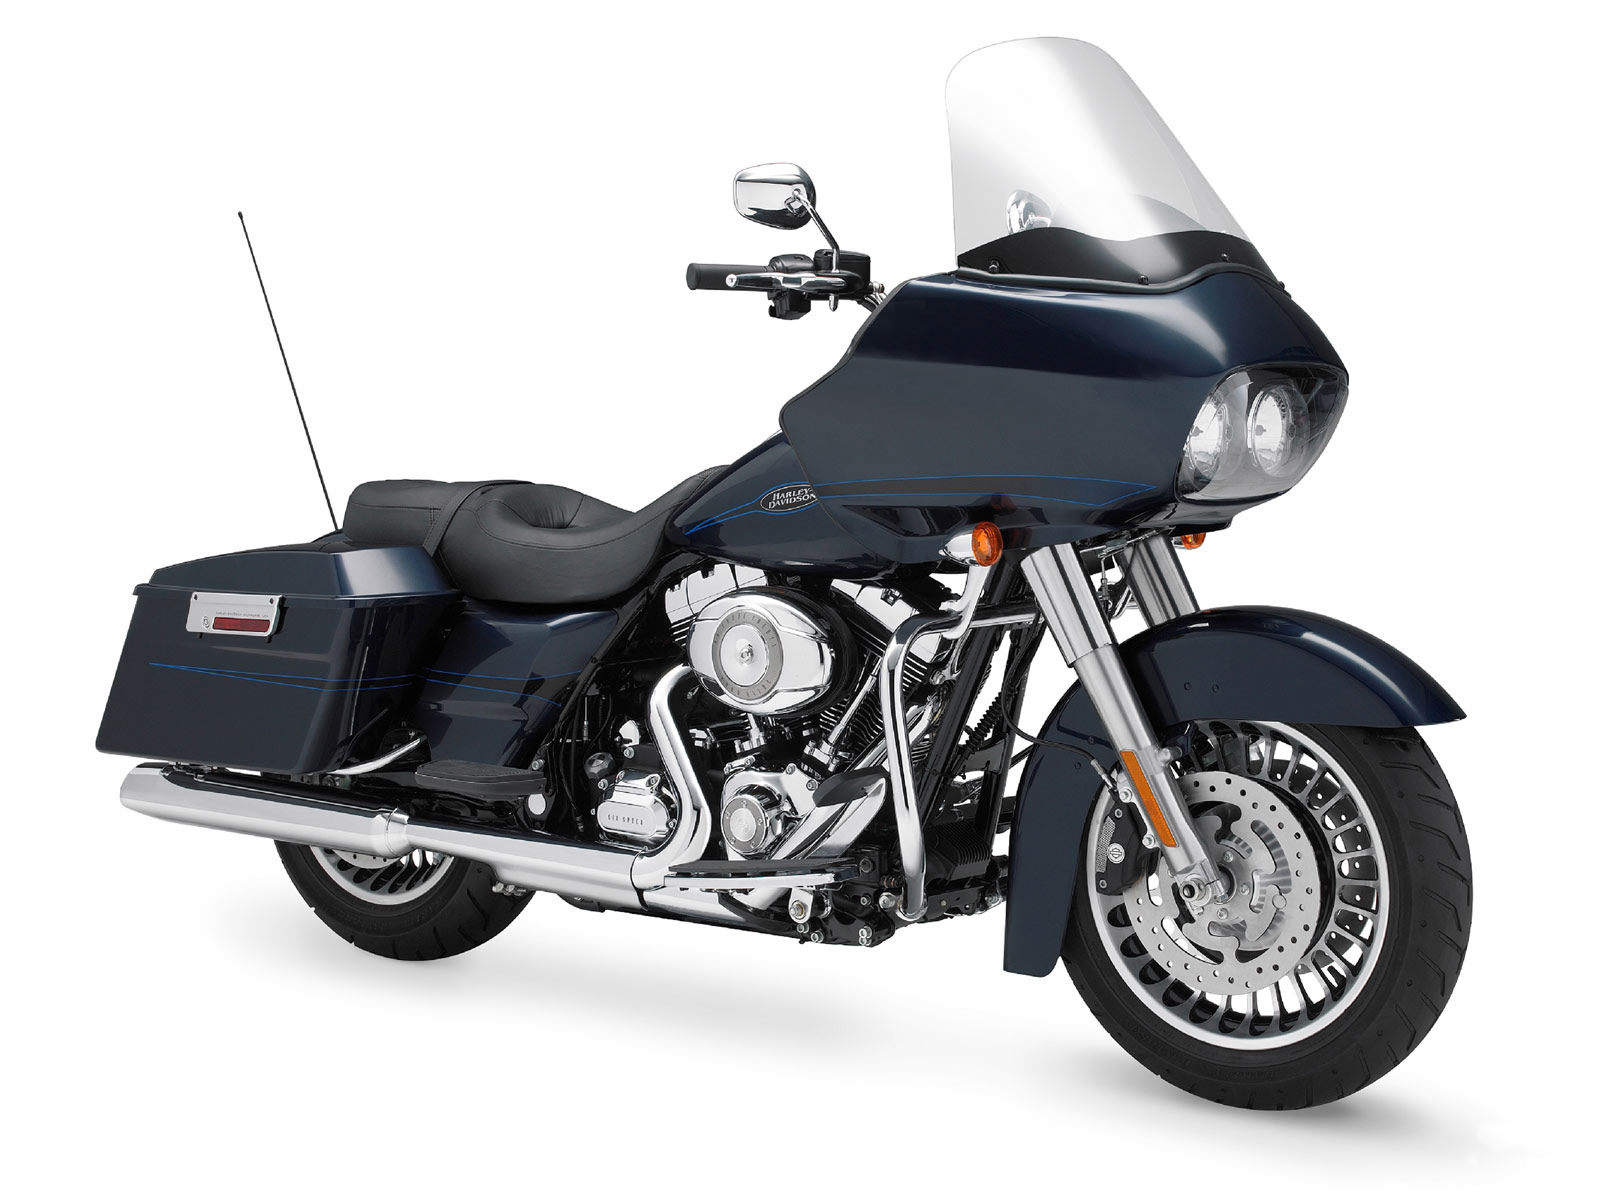 harley davidson fltr road glide pictures 2009. Black Bedroom Furniture Sets. Home Design Ideas